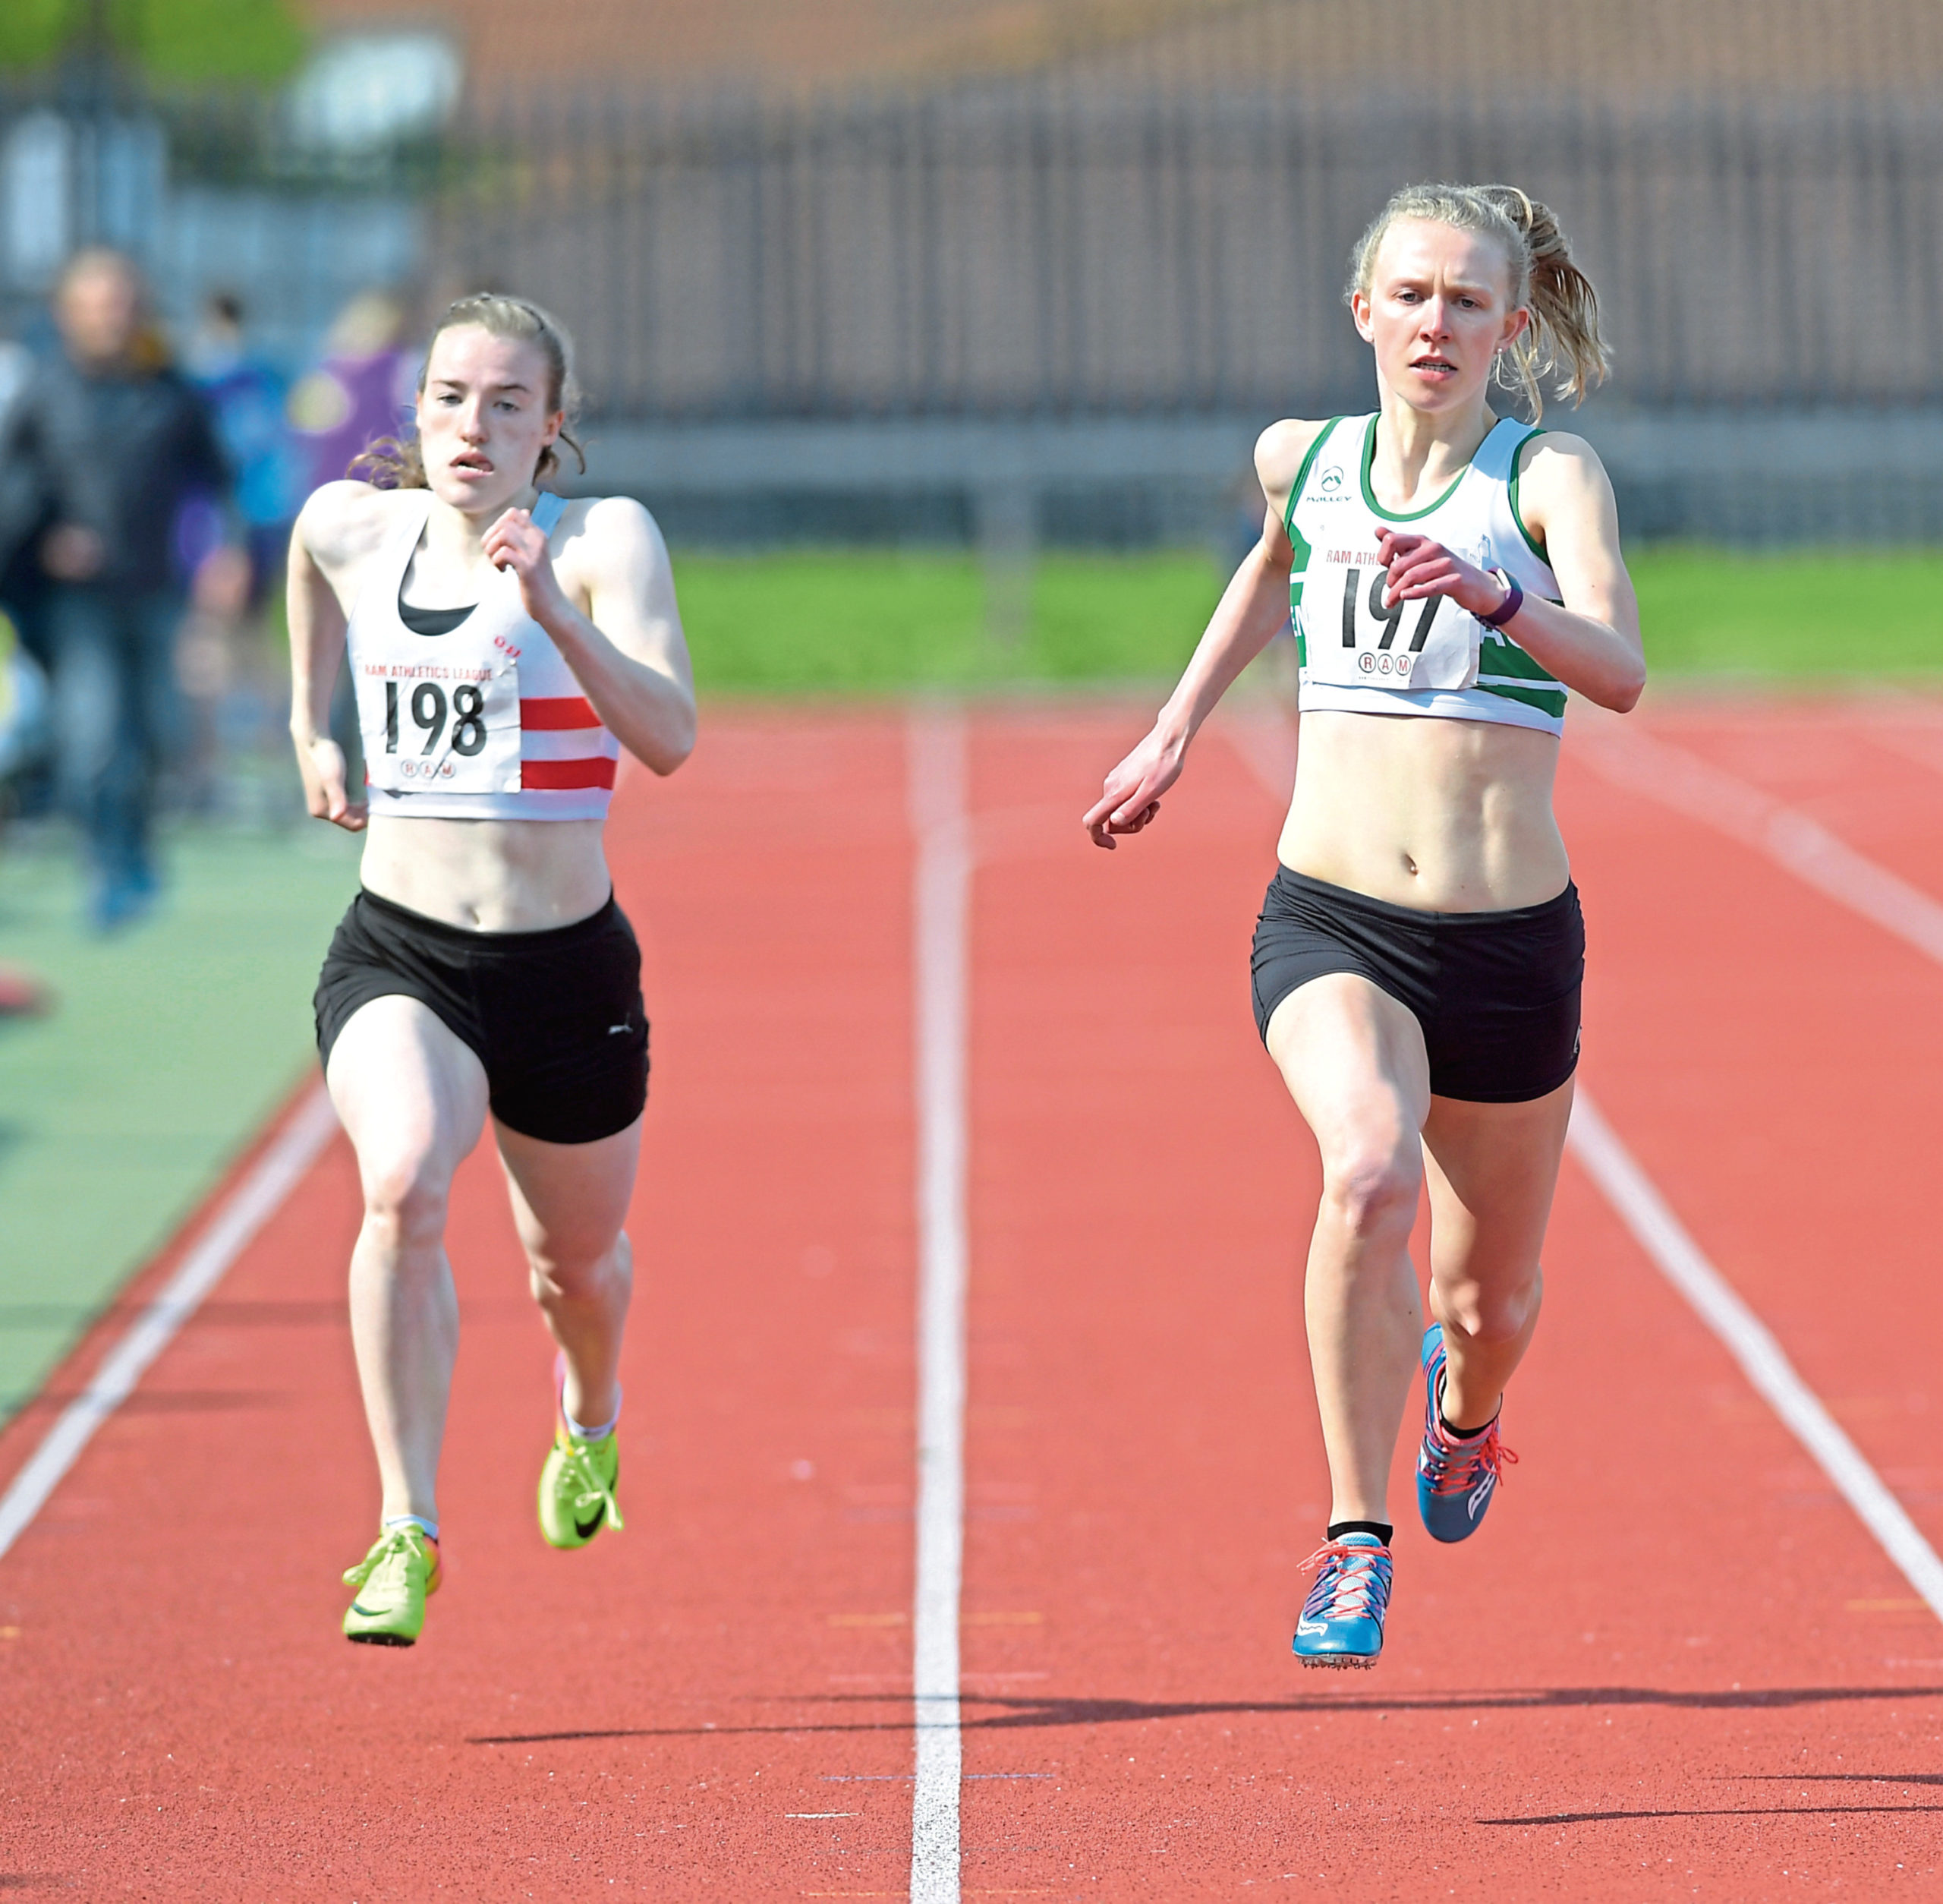 RAM Athletics League meeting at Aberdeen Sports Village. Women's 200 metres. 2nd place (198) Rebecca Matheson and winner (197) Roisin Harrison. CR0009947 02/06/19 Picture by KATH FLANNERY